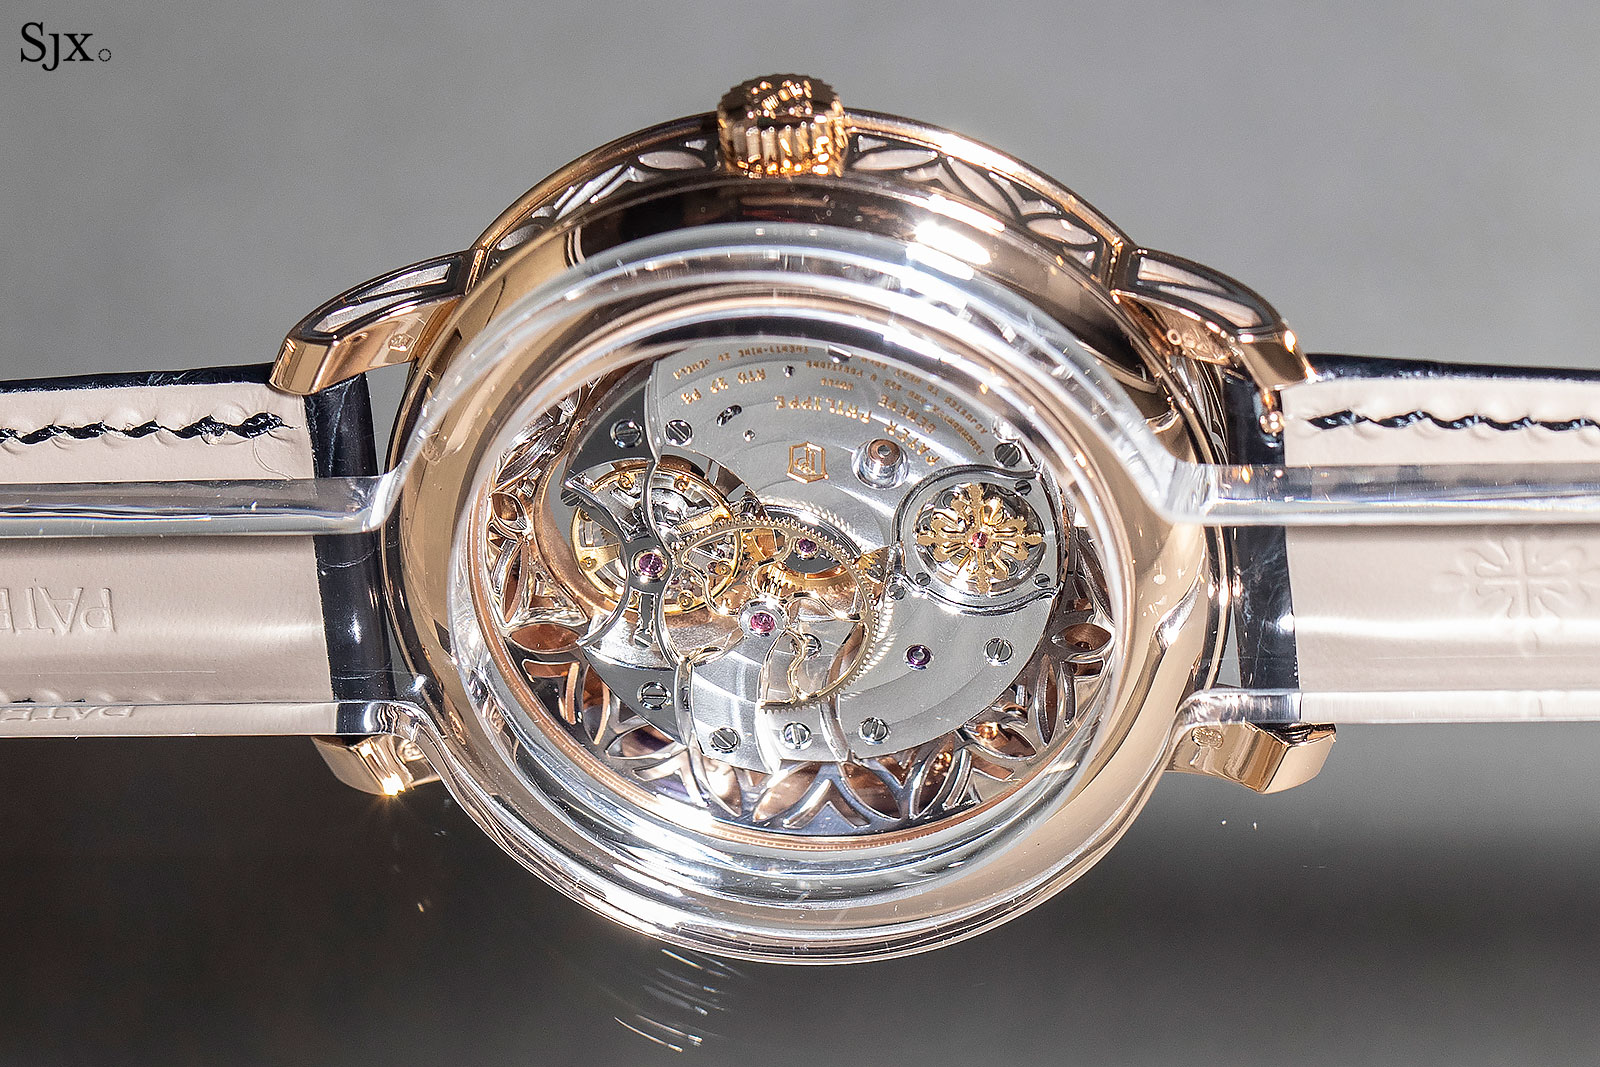 patek philippe 5303R Minute Repeater Tourbillon Singapore 2019 8